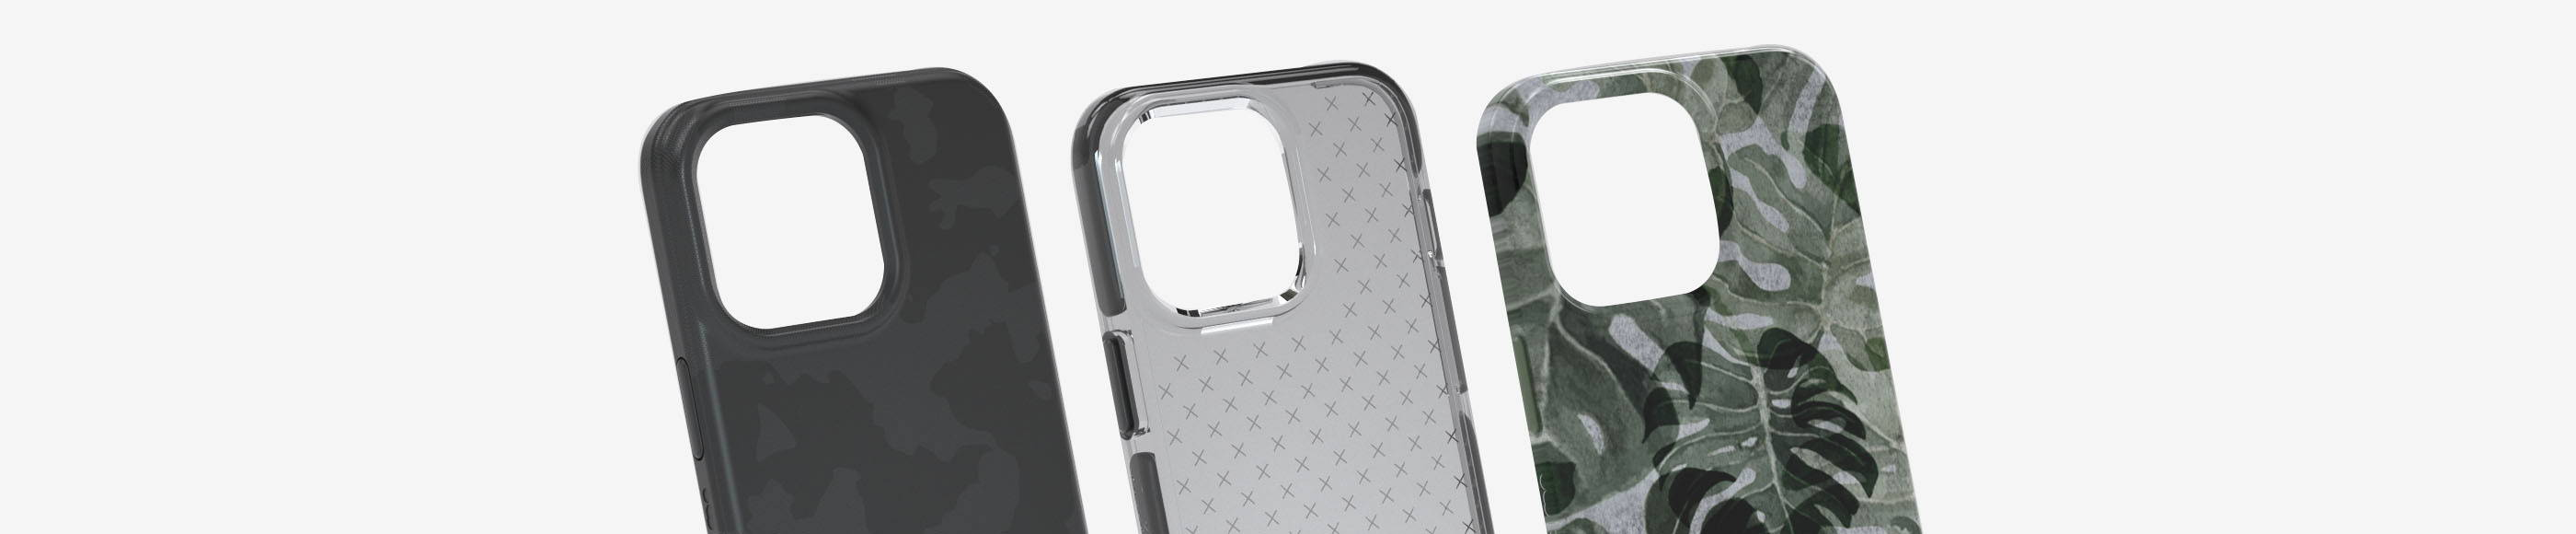 Tech21 iPhone 13 cases